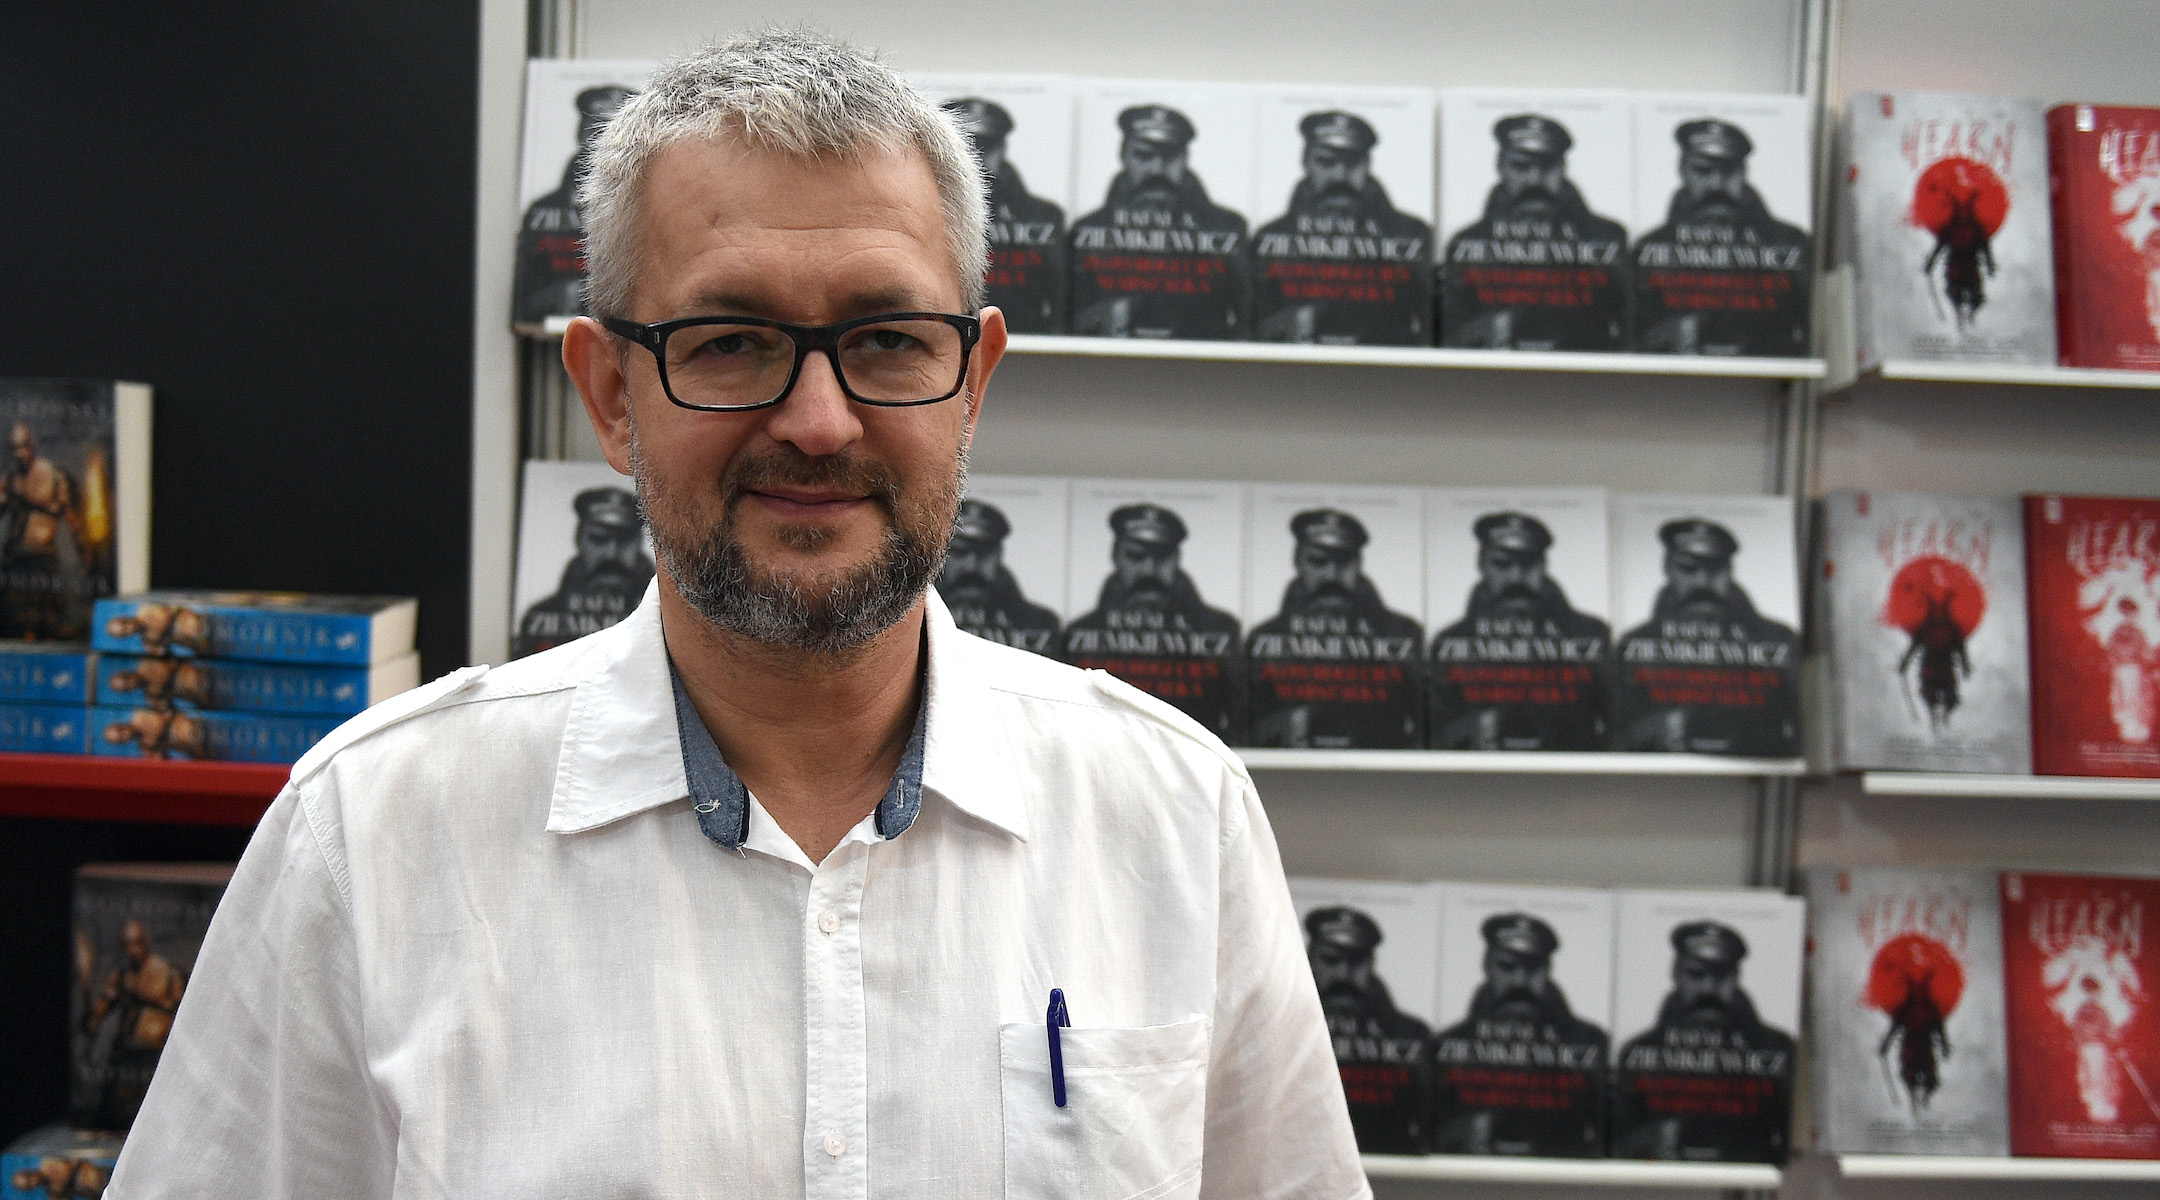 Right-wing Polish journalist calls Jews 'ruthless' and the Holocaust 'a myth' in new book